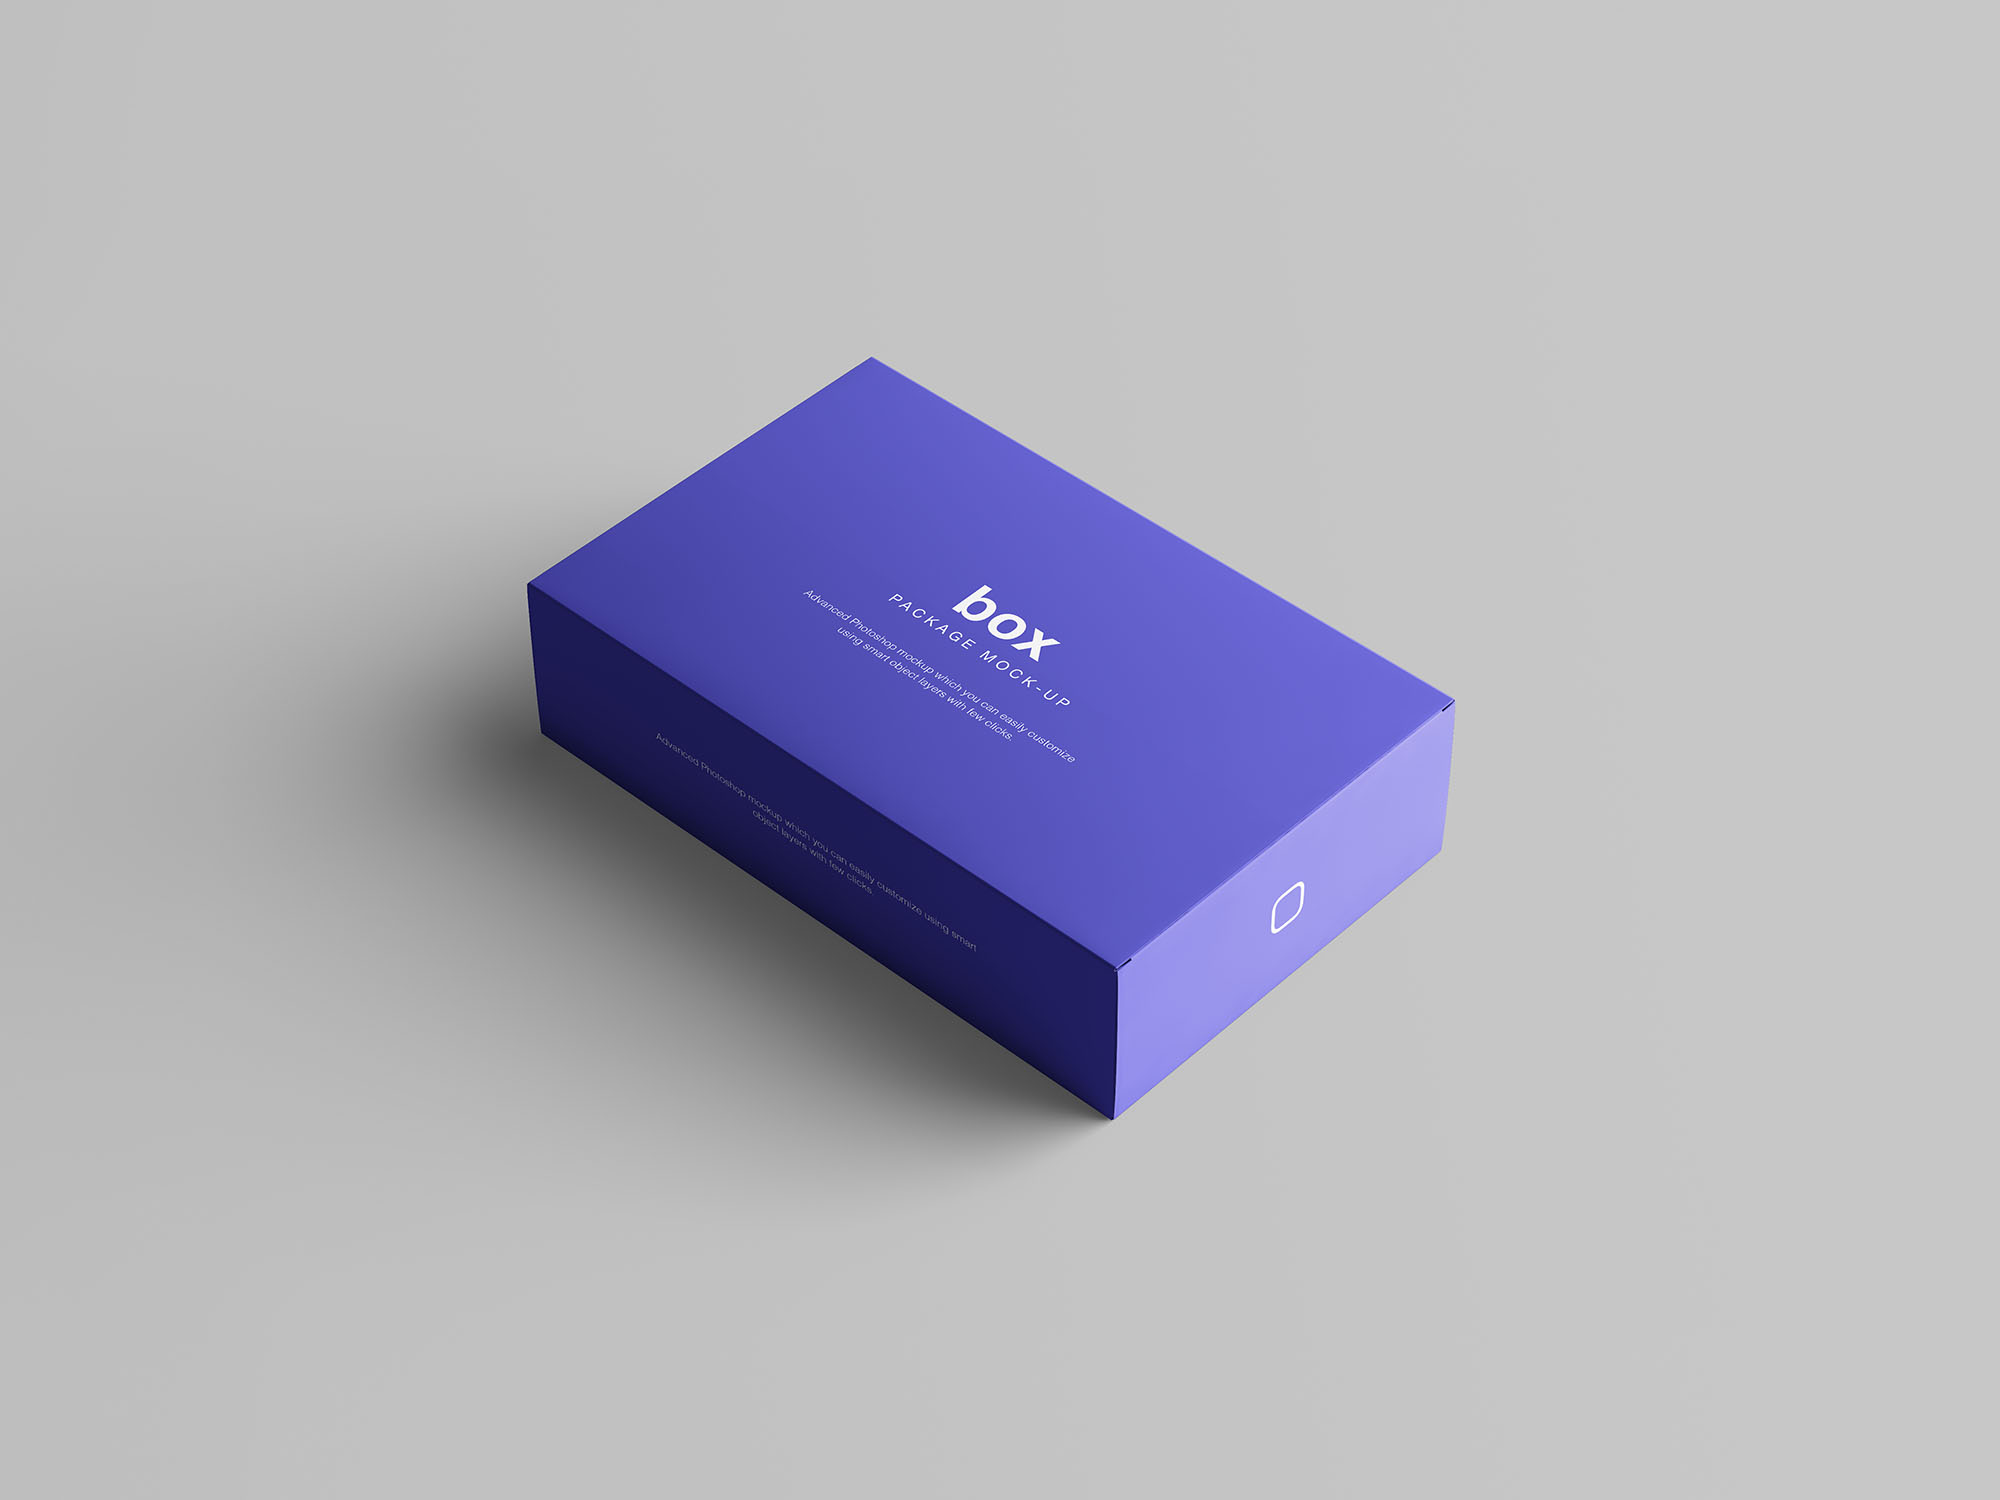 Box Packaging Mockup 2